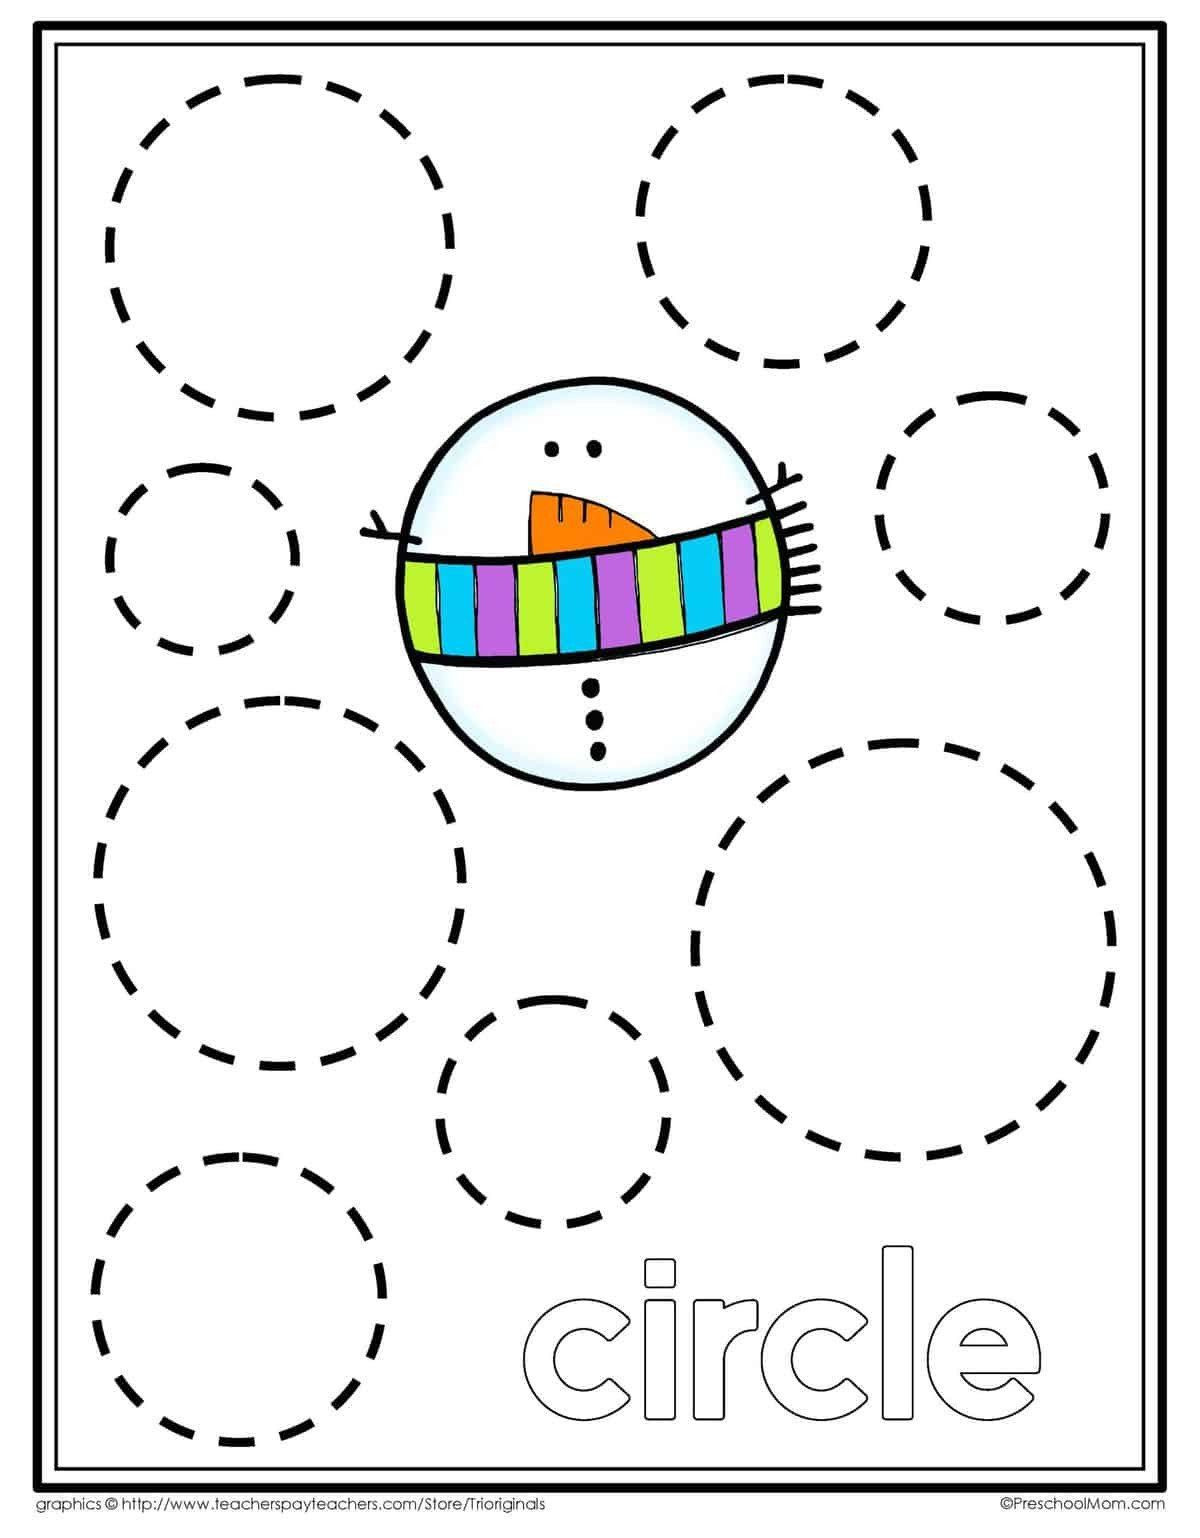 Sorting Shapes Worksheets for Kindergarten Pin On Worksheet for Kindergarten Printable